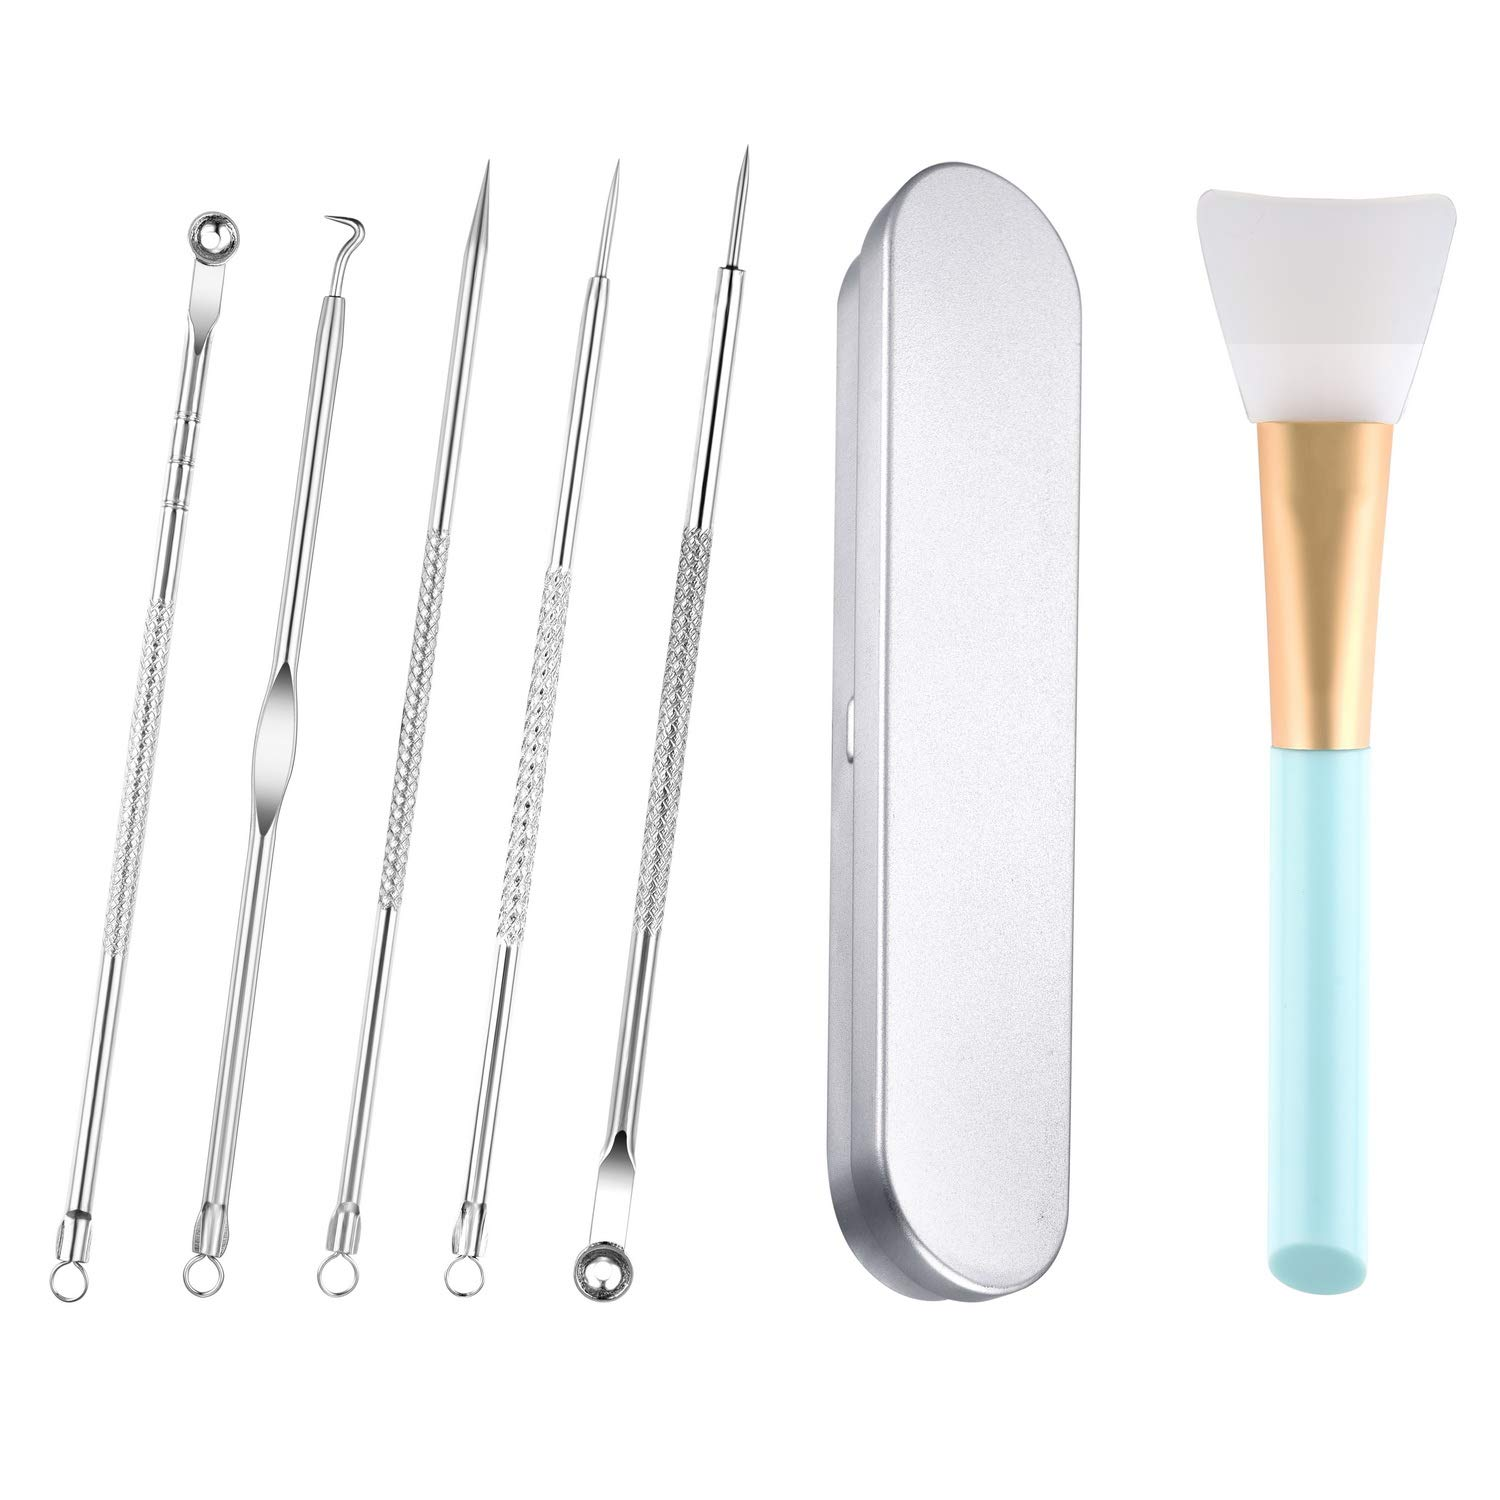 NEW Blackhead Remover Comedone extractor Tool Kit & Silicone Head Face Mask (blue) By PERINATION: Safe Stainless Steel tool kit | Removes Blemishes, Whiteheads, Zits & Pimples popper, clean pores.